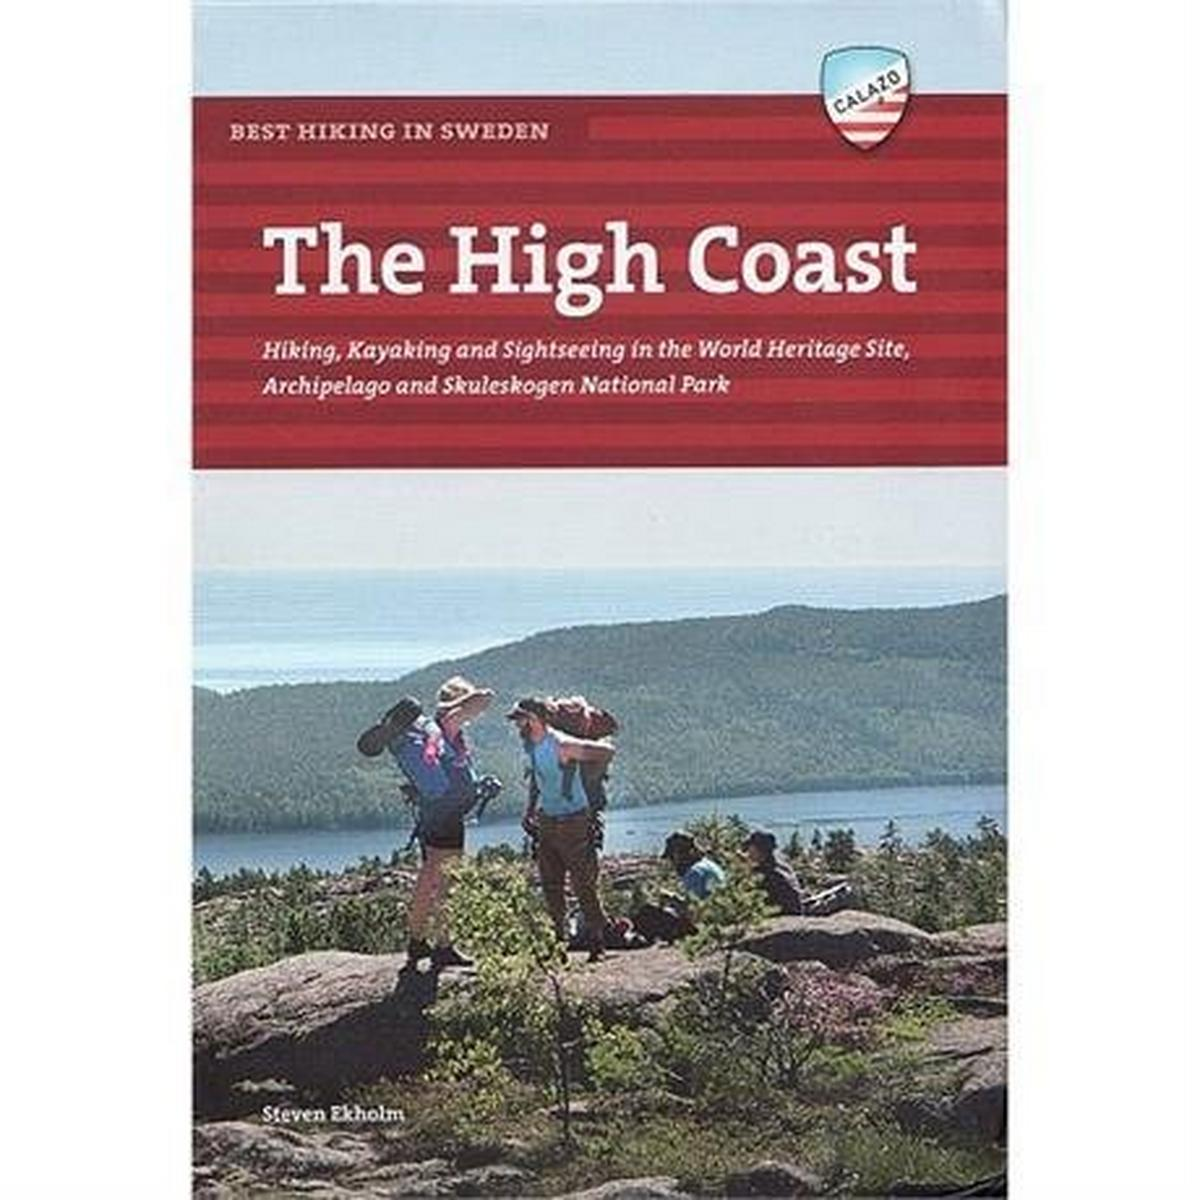 Miscellaneous Walking Guide Book: Best hiking in Sweden: The High Coast